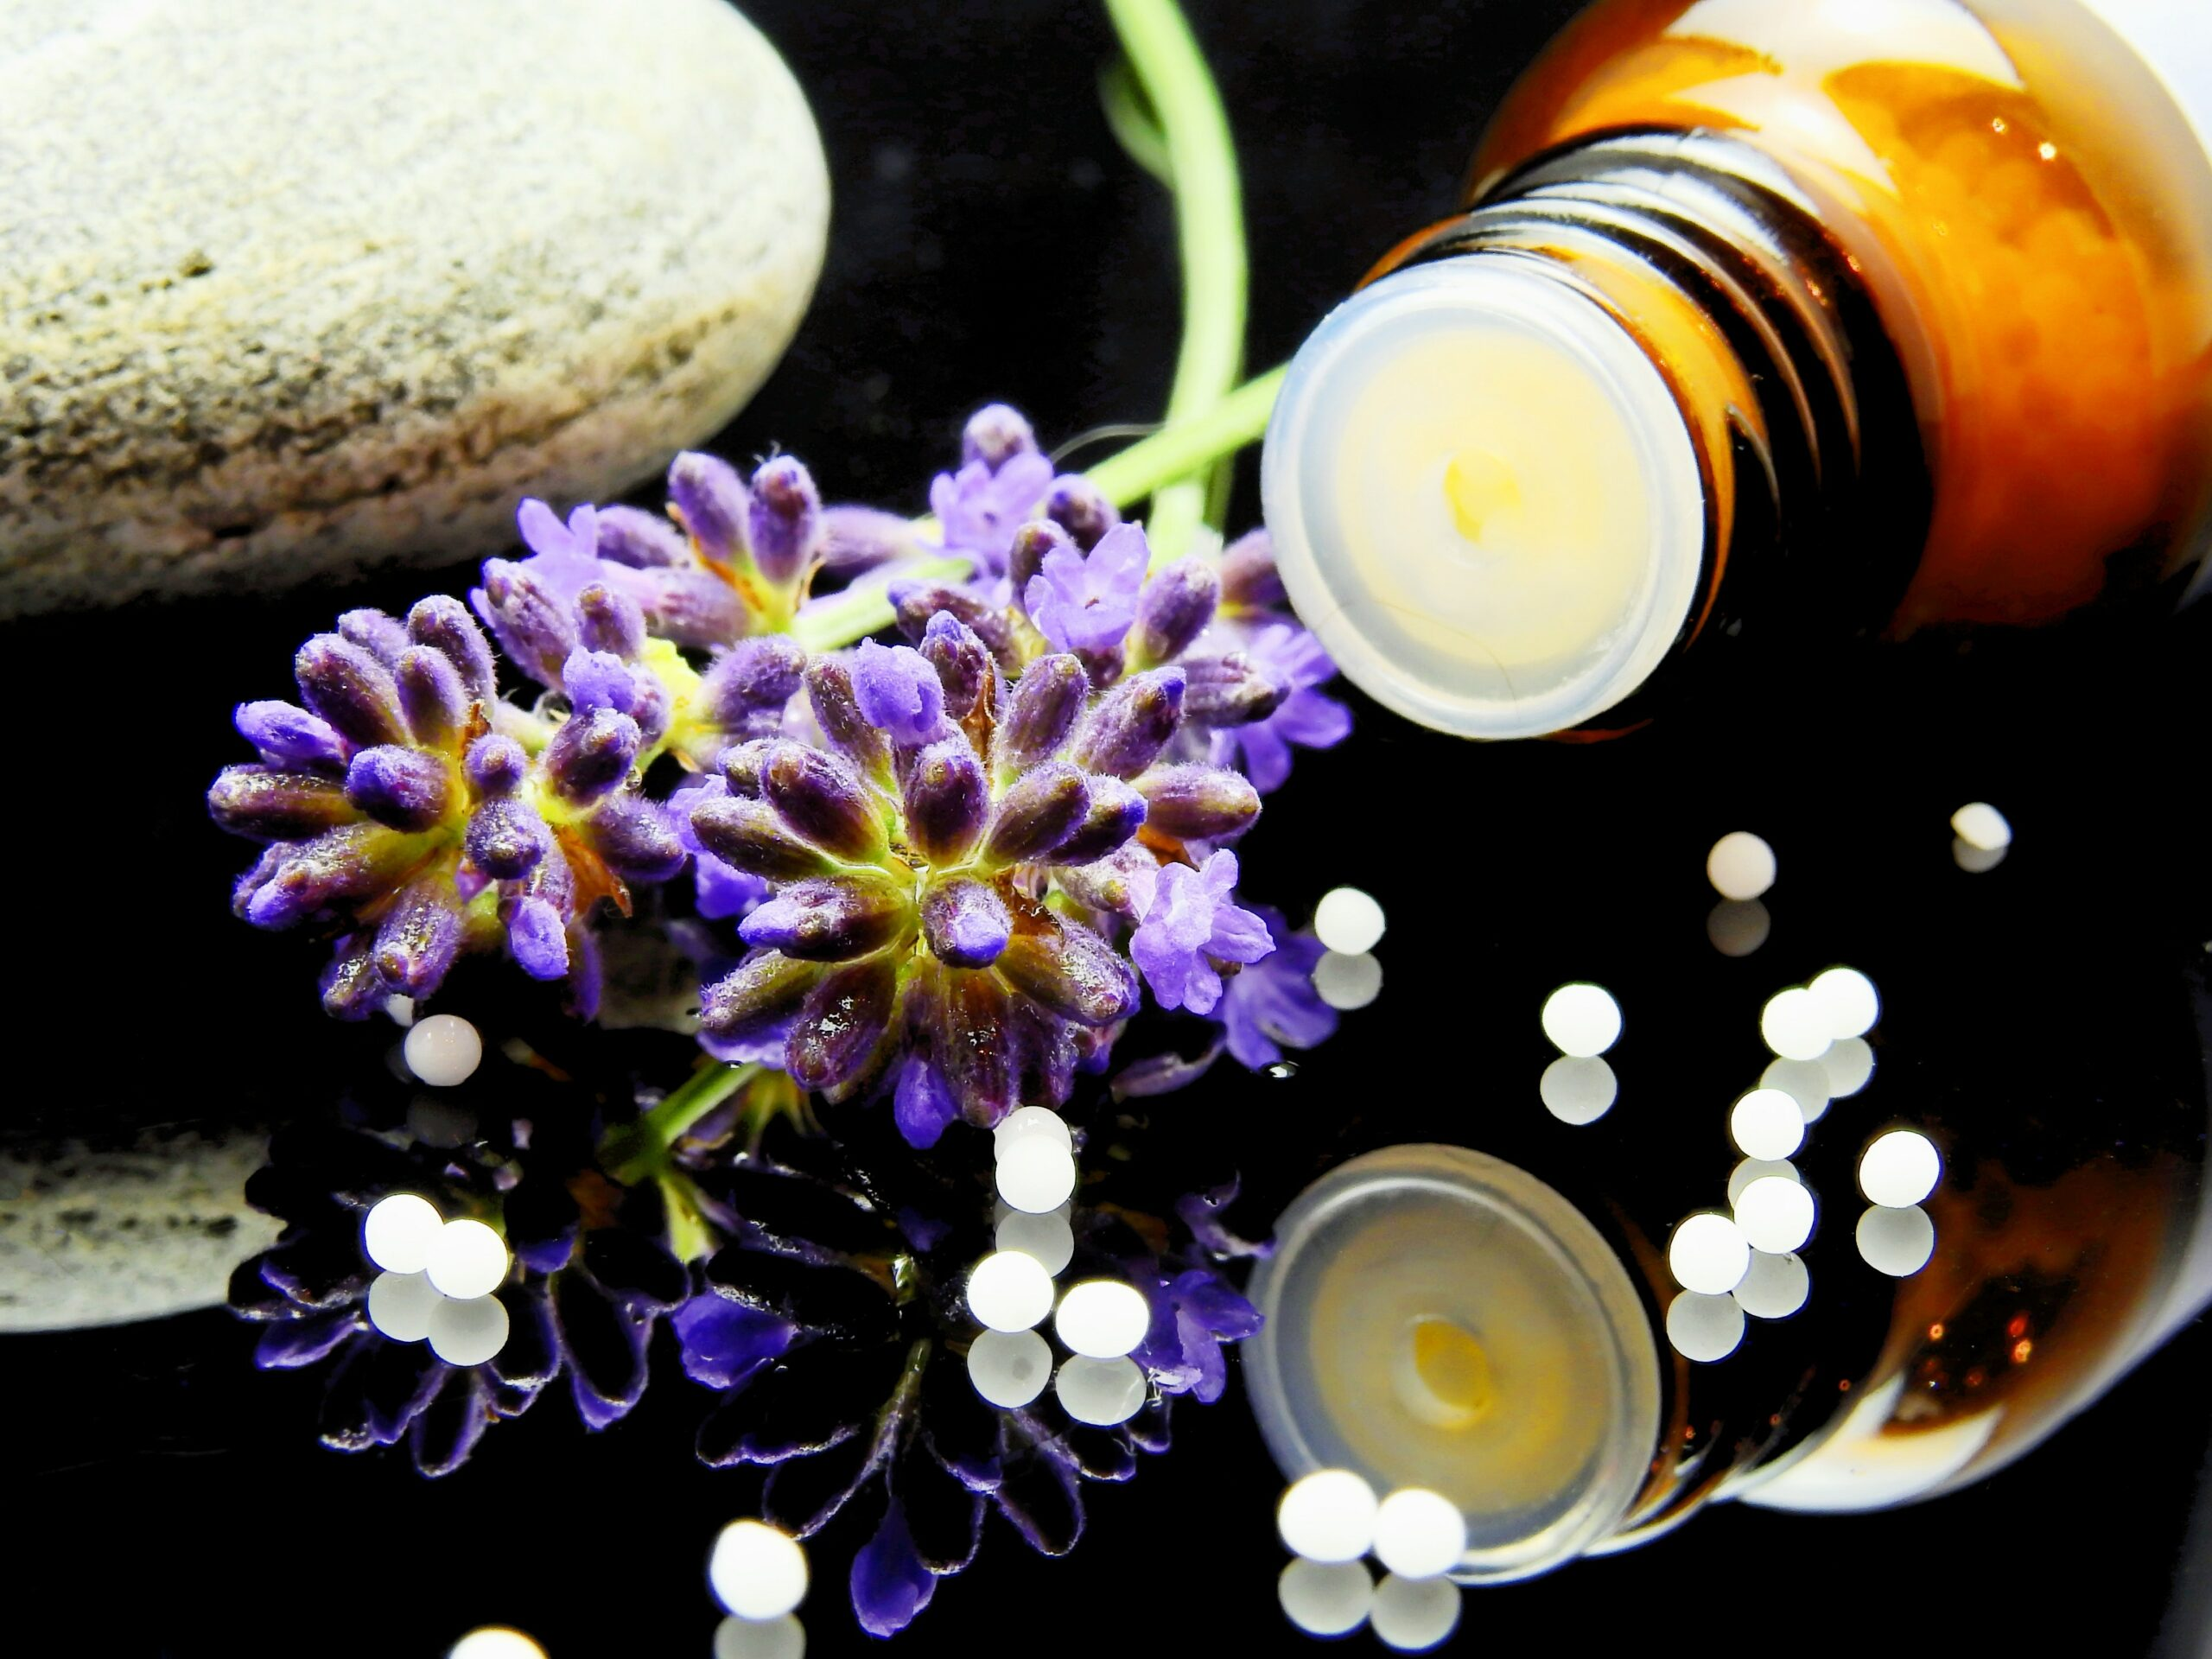 Purple flowers next to bottle of homeopathic medicine